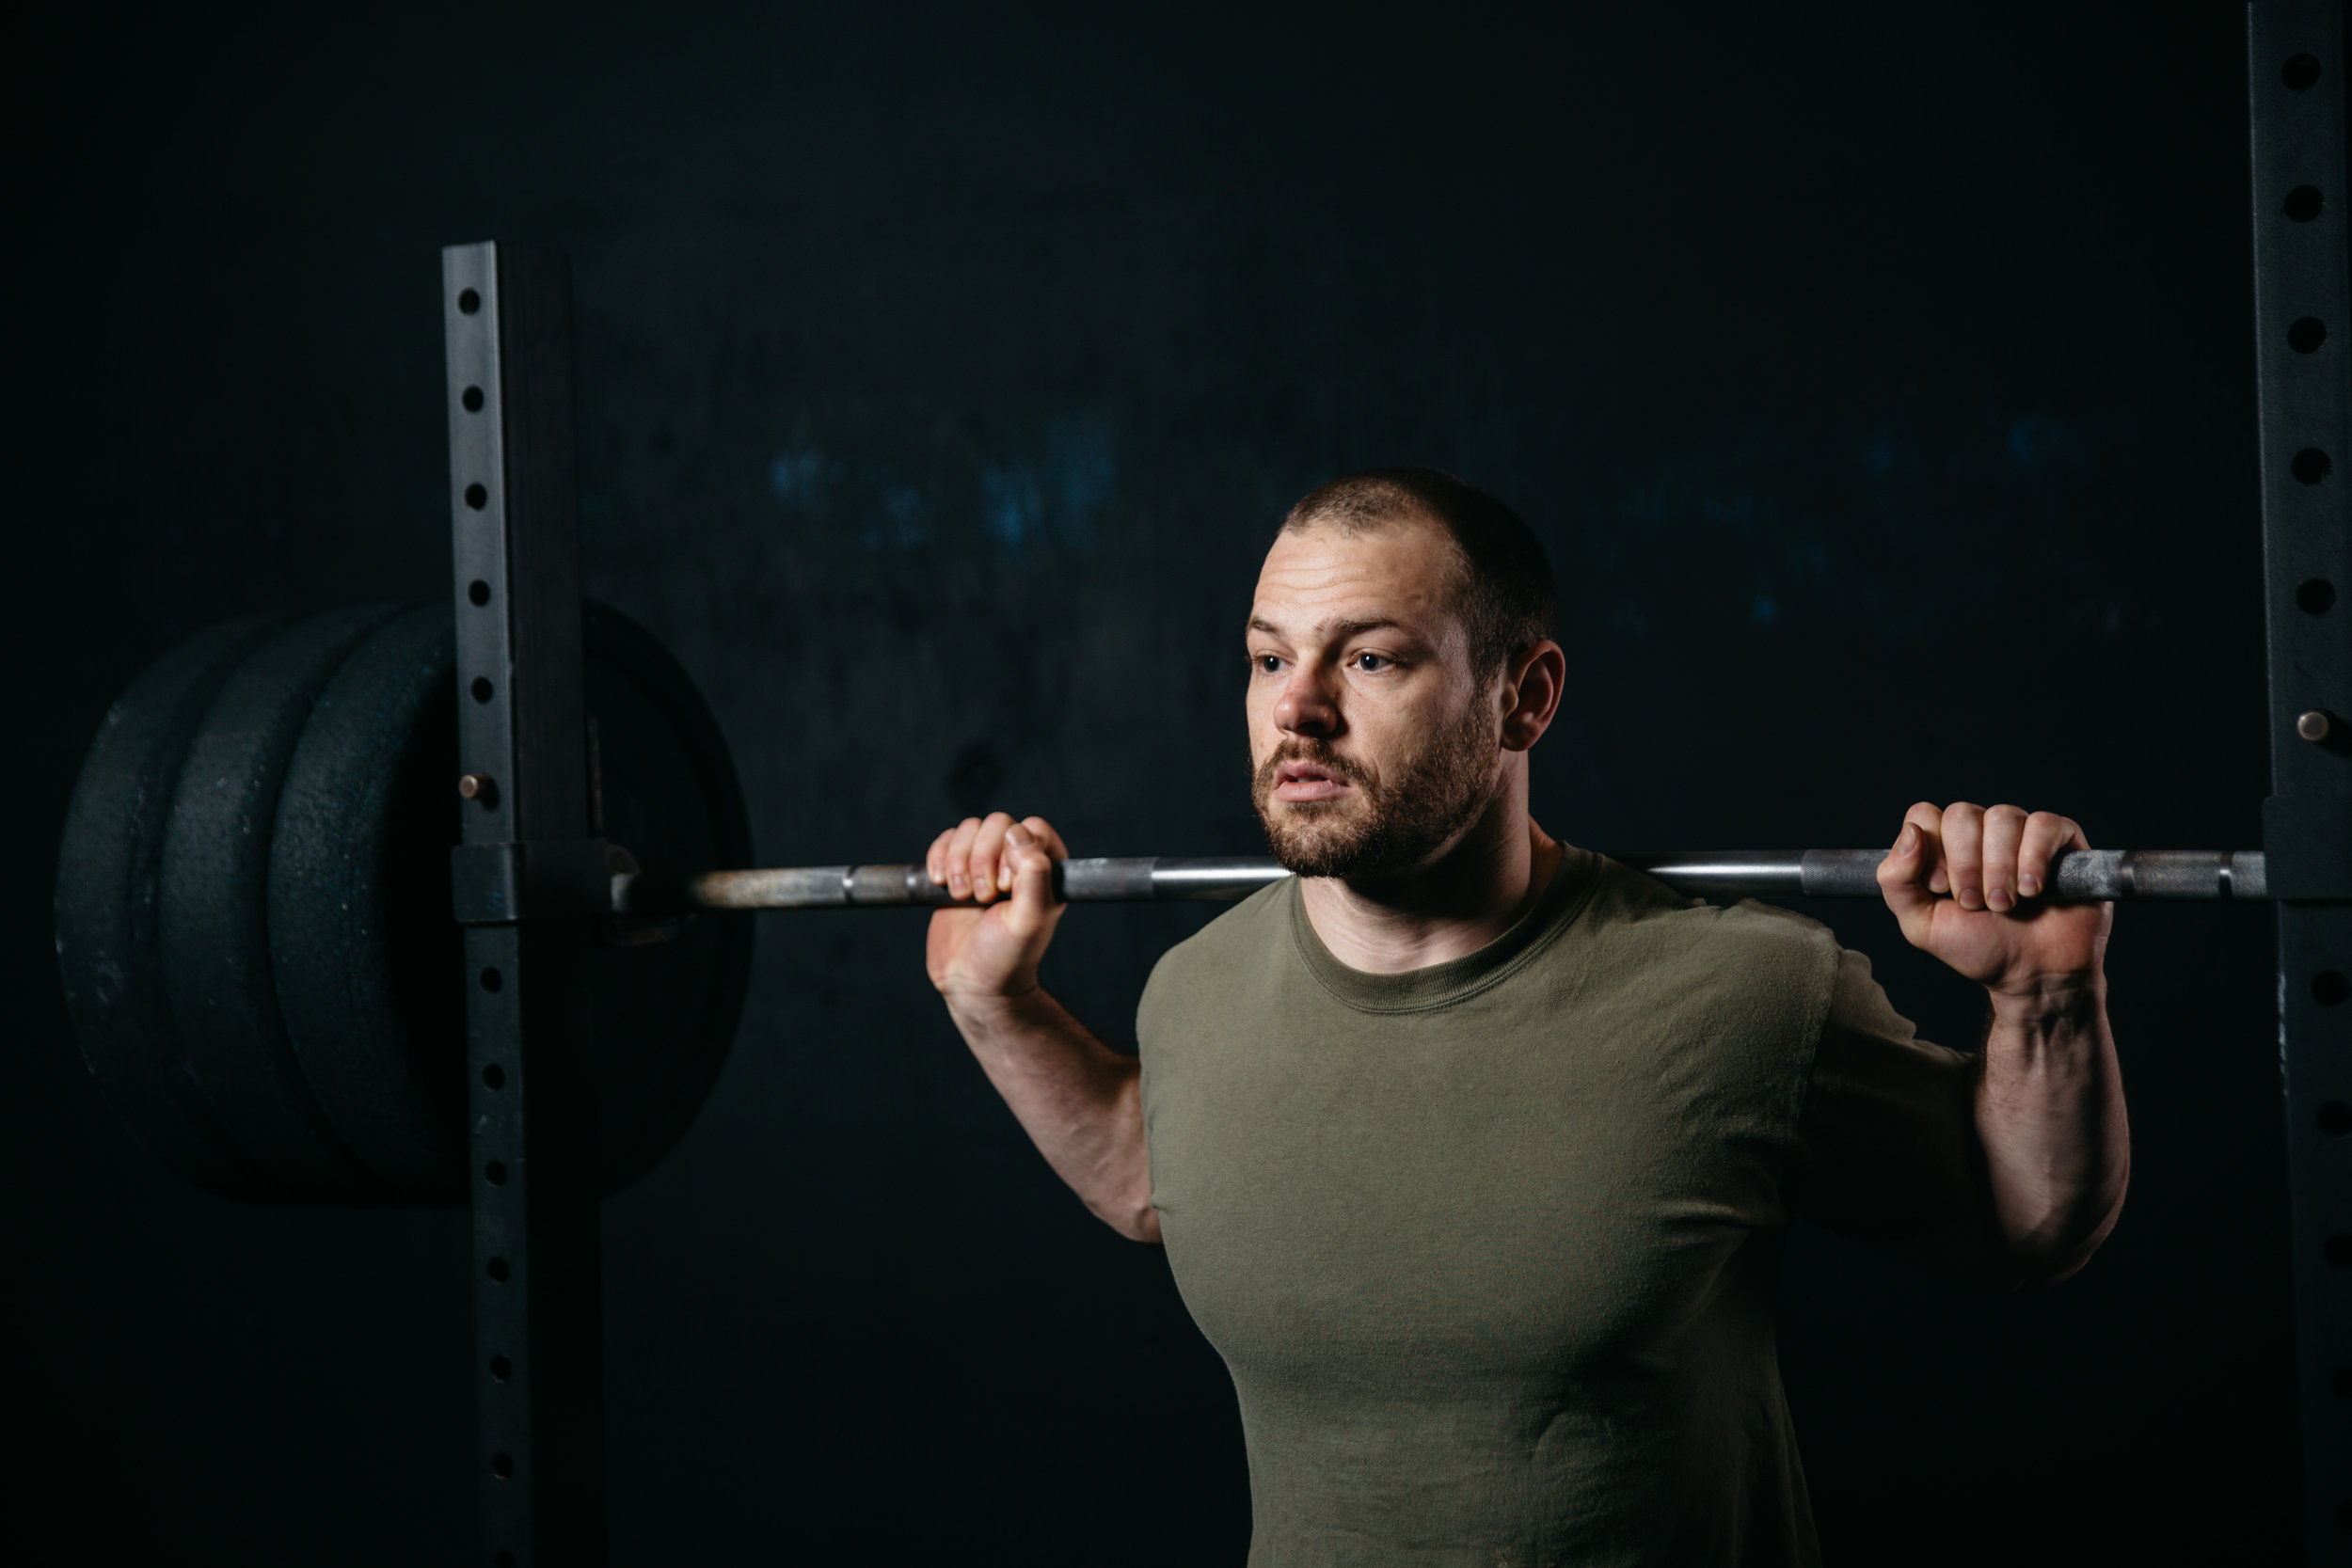 Personalized Strength Programs - With a Hint of Conditioning